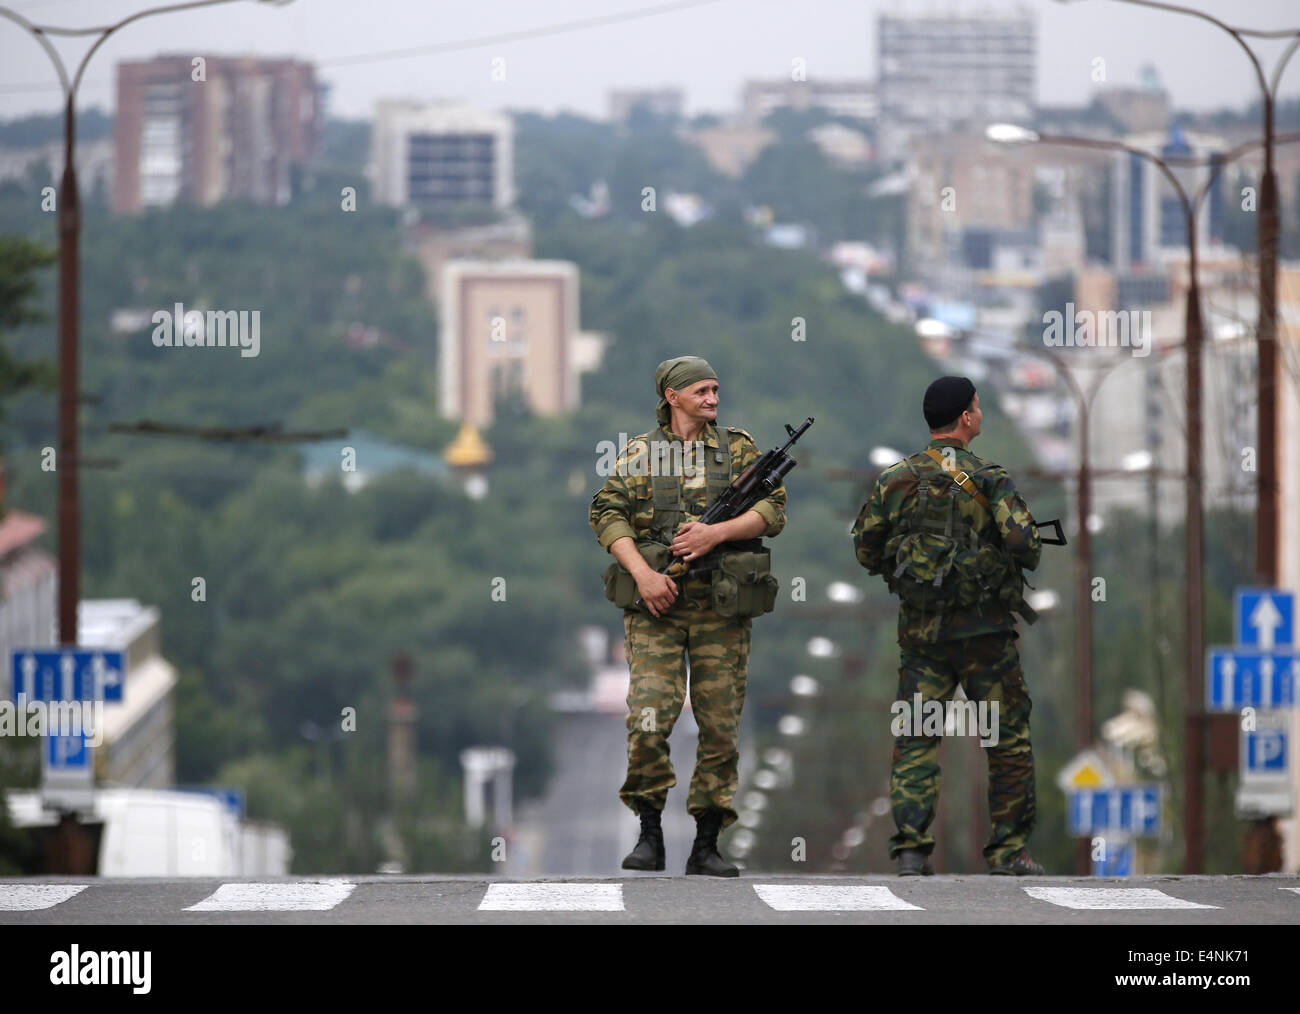 Donetsk, Ukraine. 13th July, 2014. Two armed men stand on a road ahead of a rally marking the 250th anniversary - Stock Image